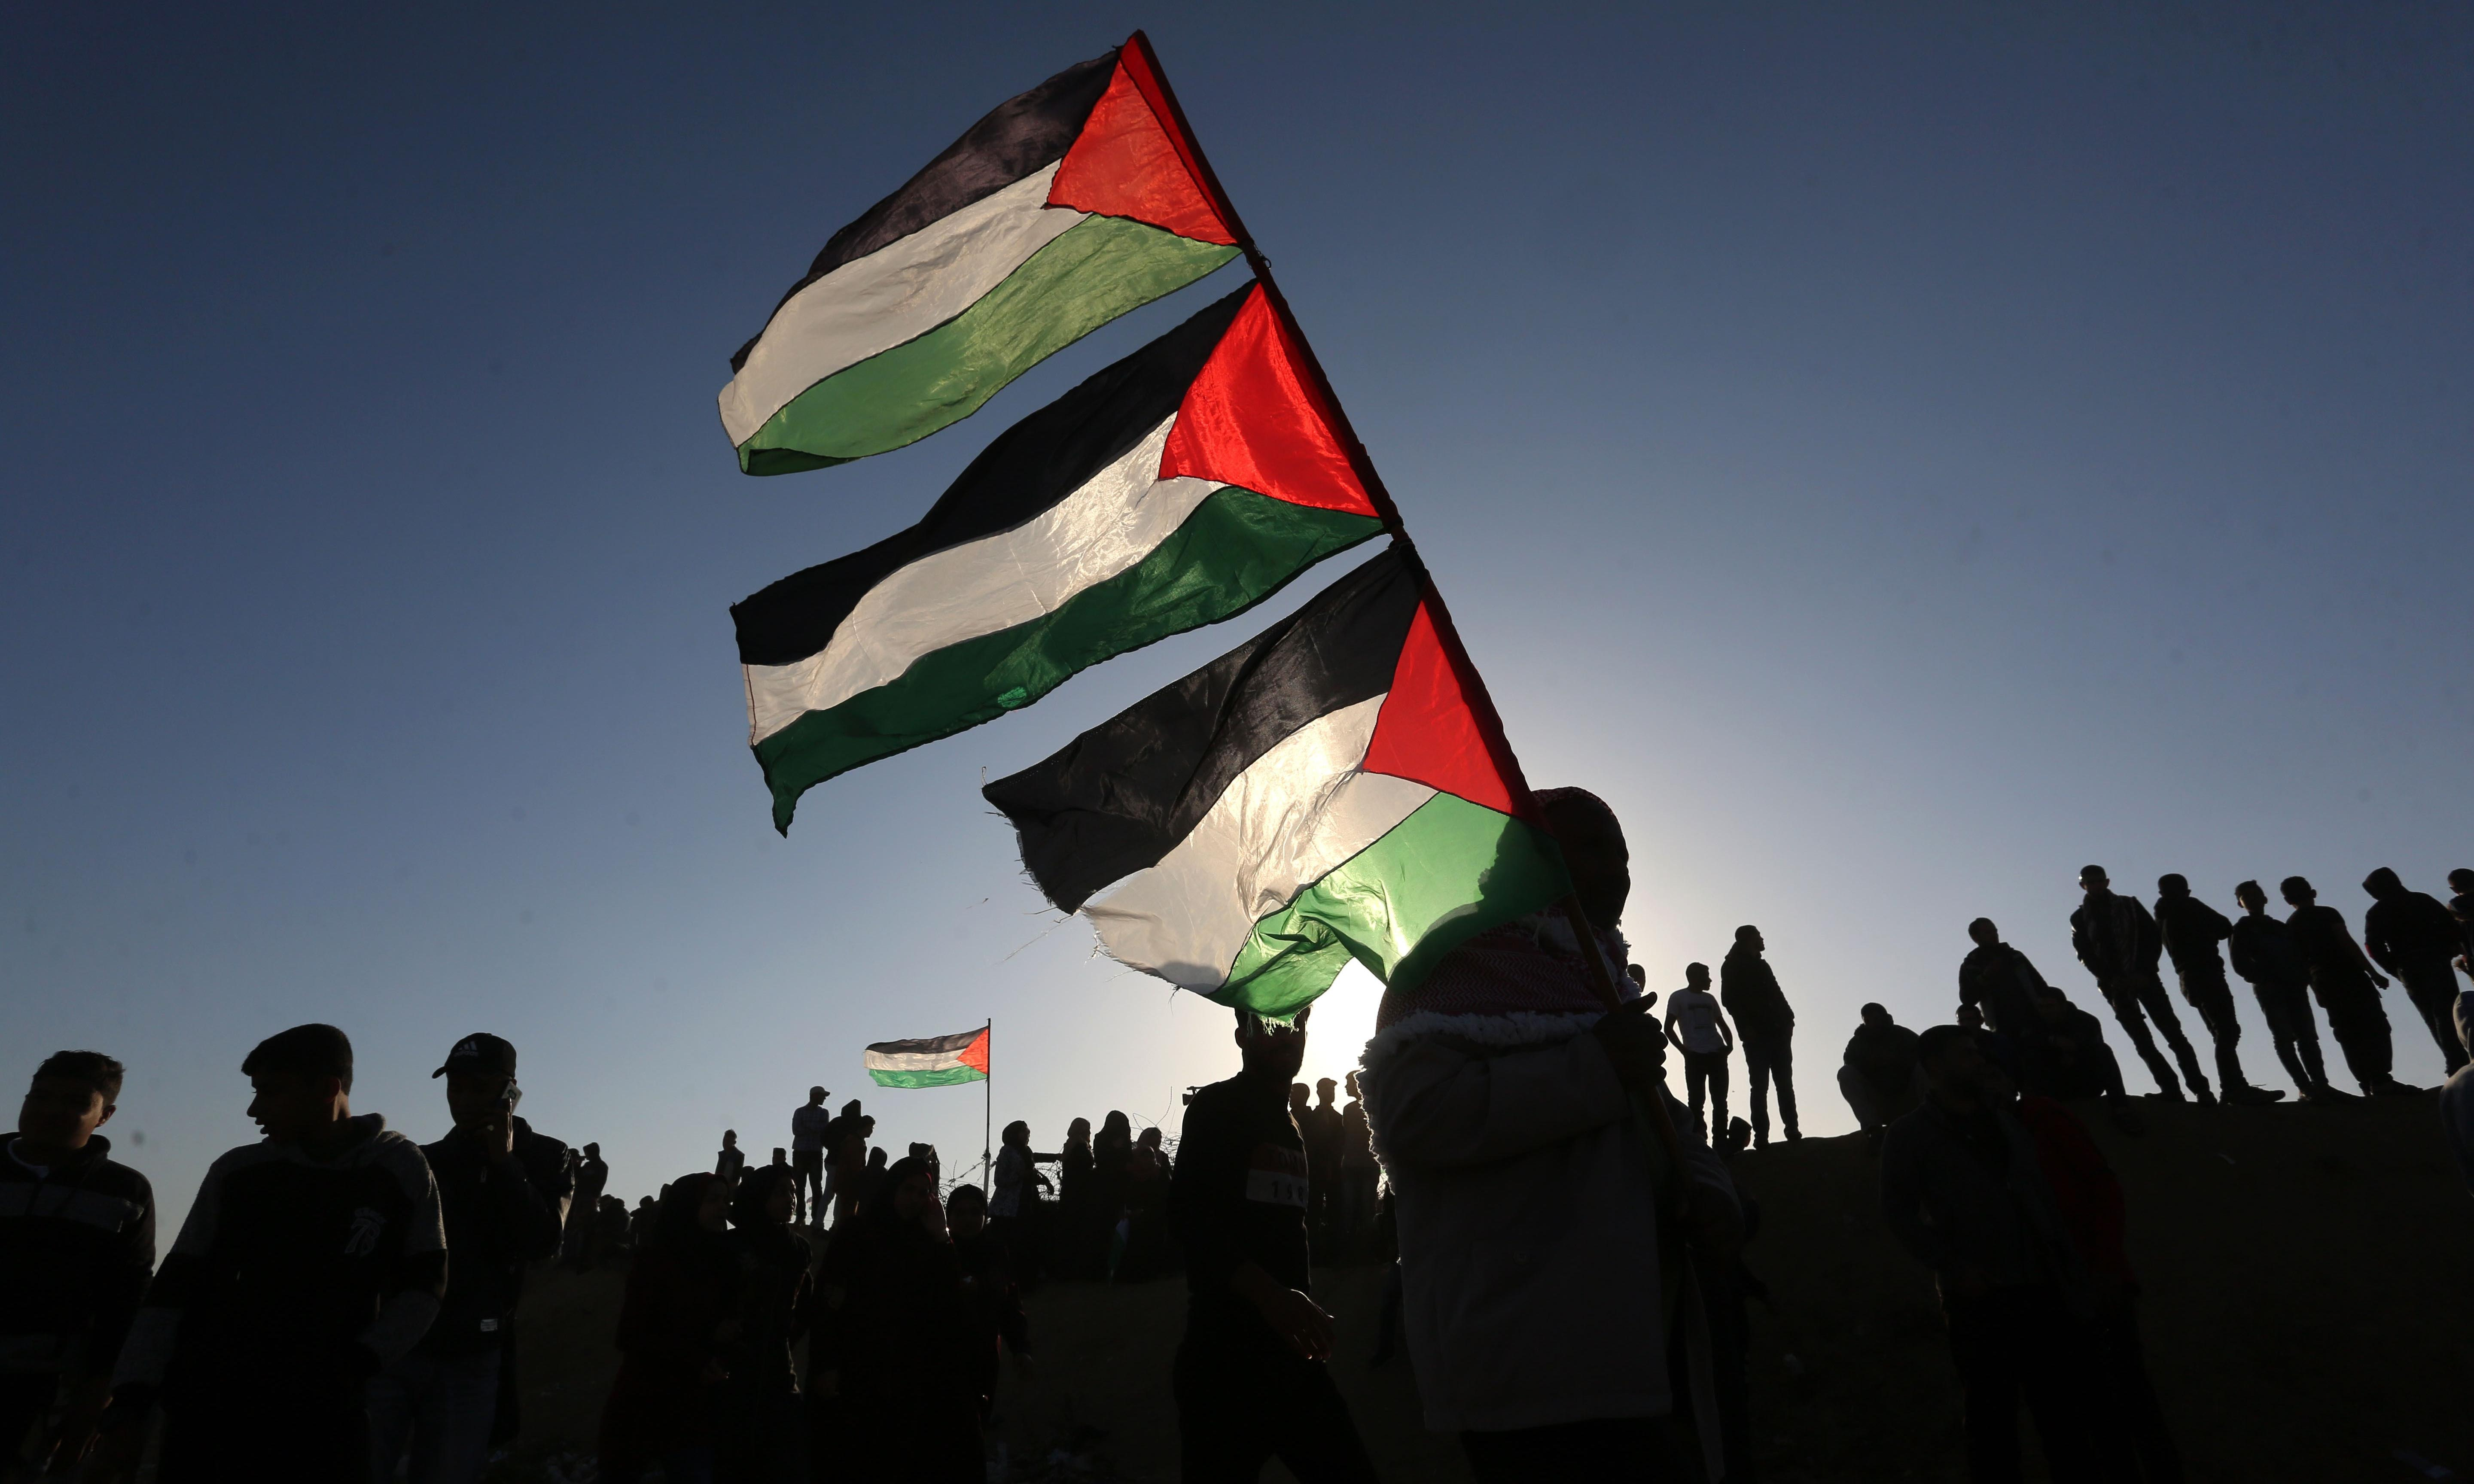 Europe must stand by the two-state solution for Israel and Palestine